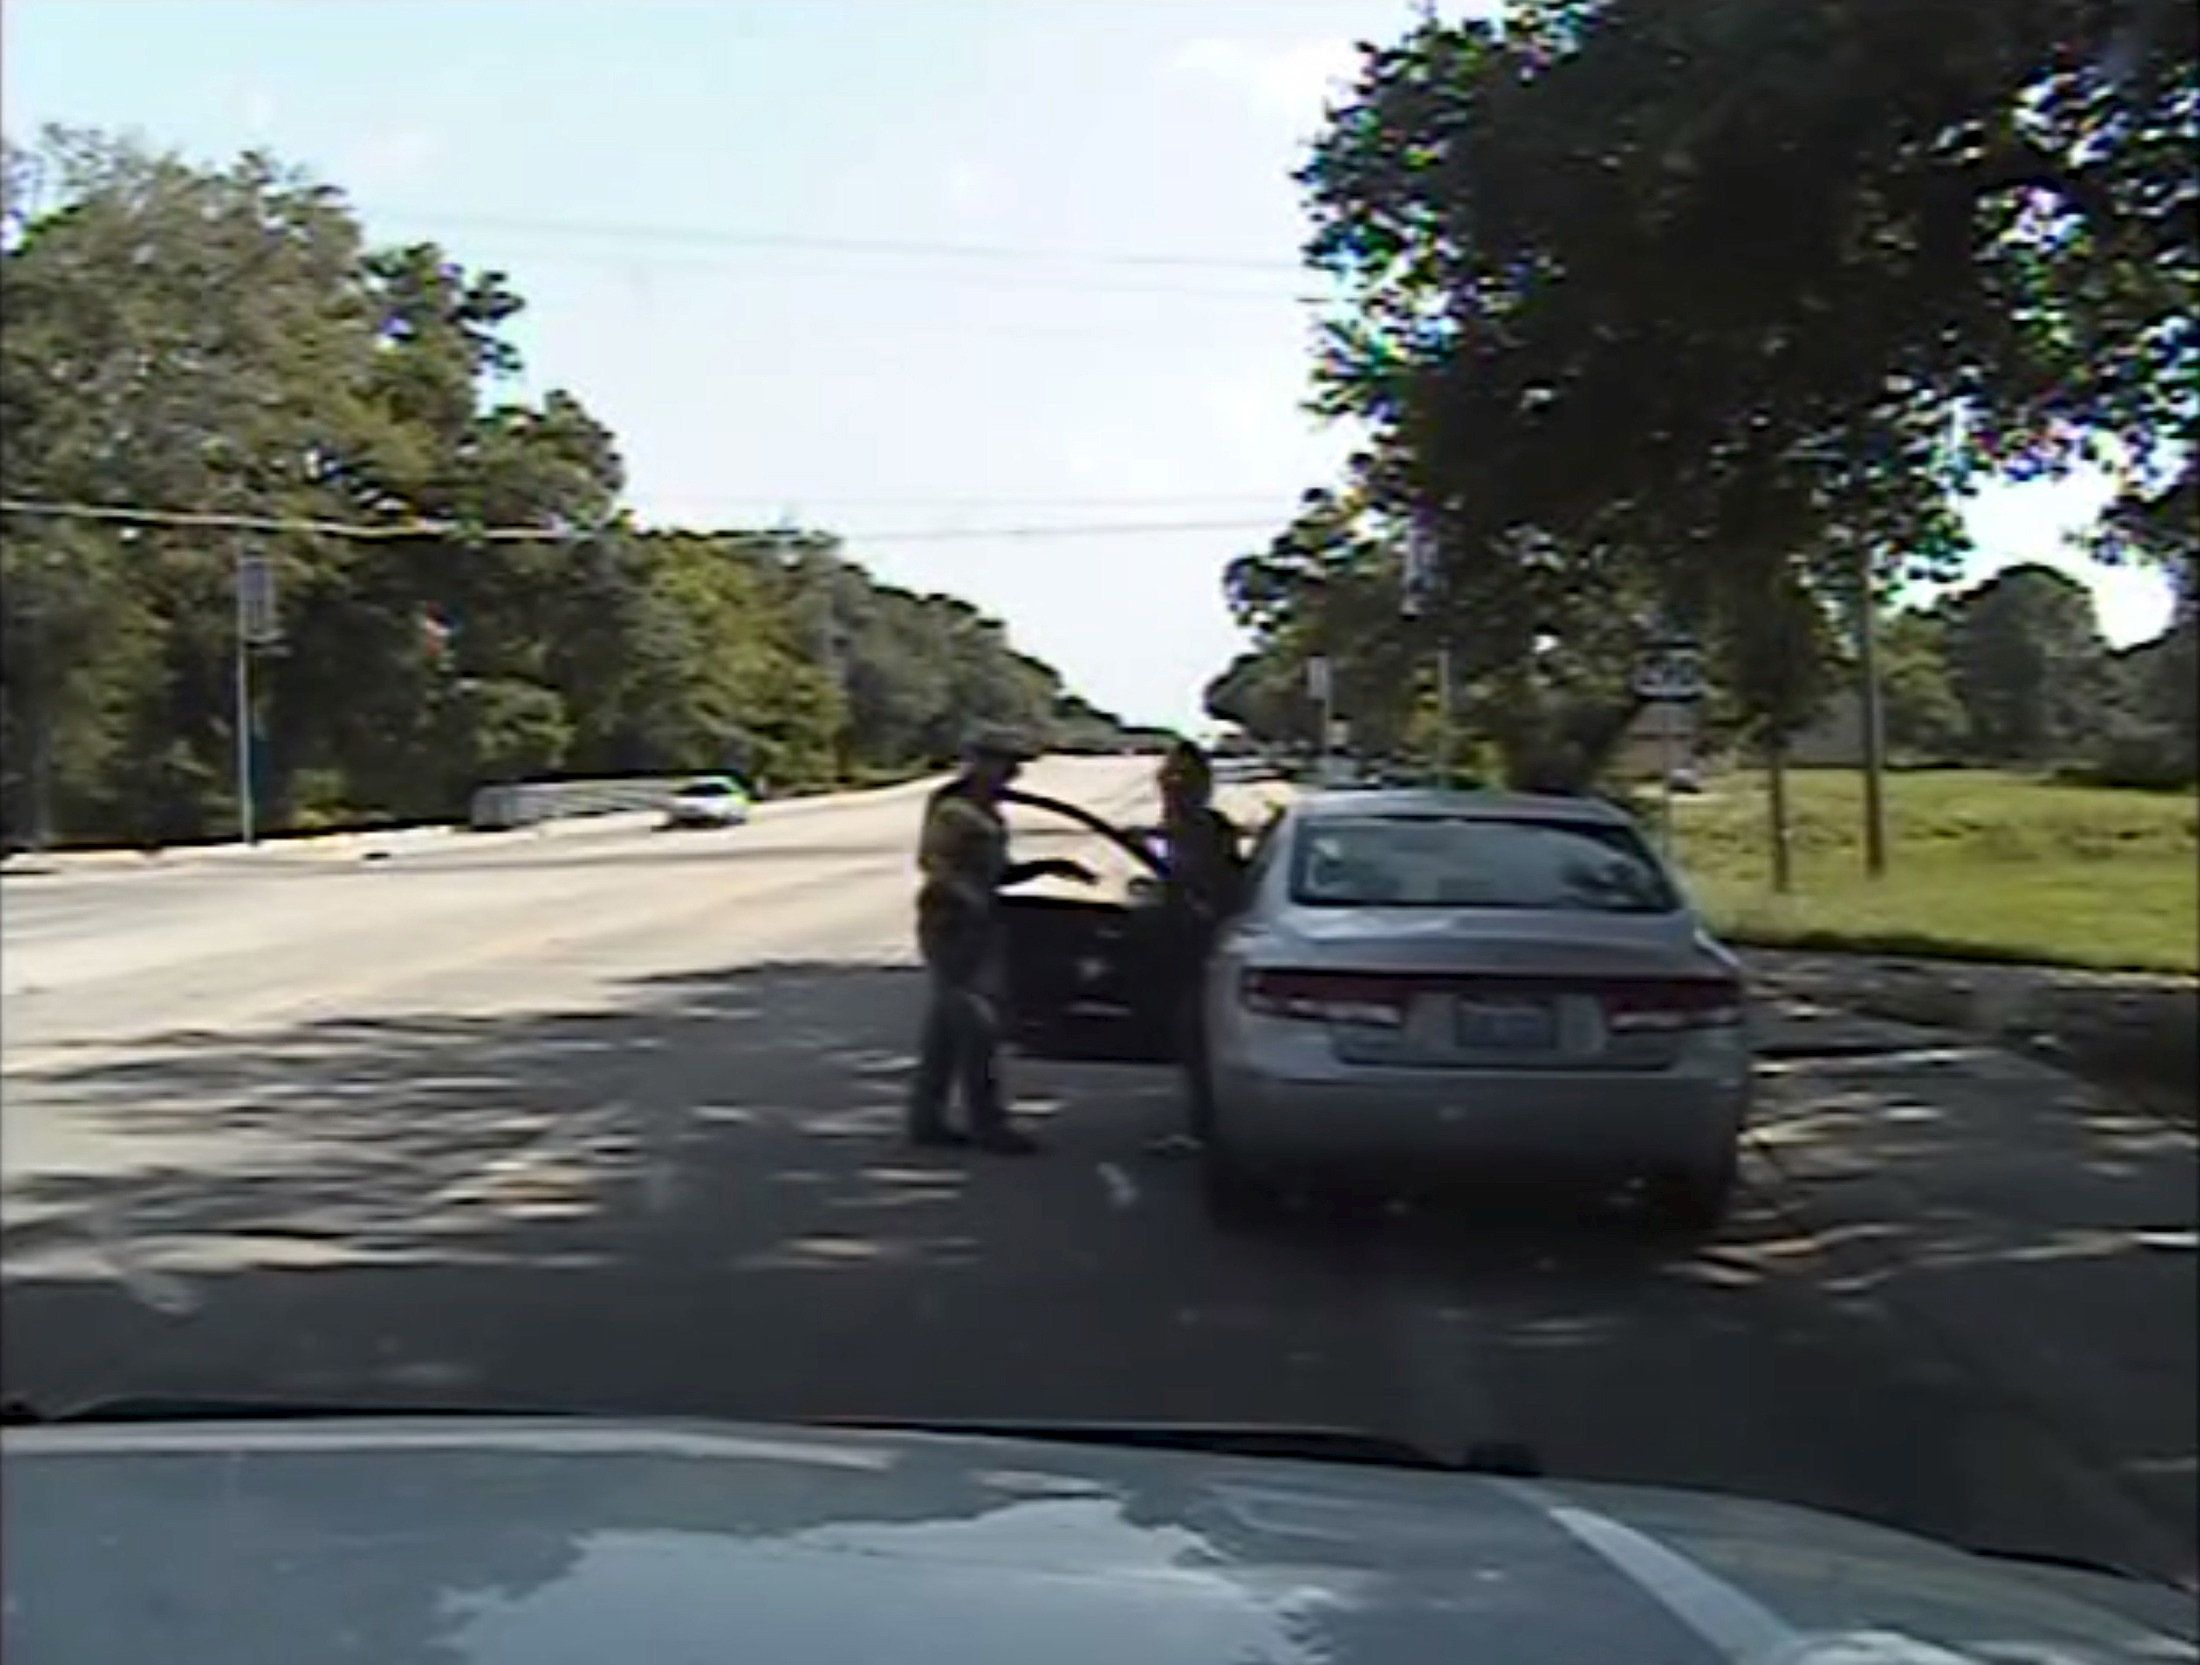 Texas state trooper Brian Encinia points a Taser as he orders Sandra Bland out of her vehicle in this still image captured from the police dash camera video from the traffic stop of Bland's vehicle in Prairie View, Texas, on July 10, 2015. A Texas lawmaker who met with the family of a black woman found dead in her jail cell after her arrest following a routine traffic stop said on July 21, 2015 she should never have been in police custody in the first place. Democratic State Senator Royce West told a news conference there would be no cover-up in the investigation of the death of Sandra Bland, a 28-year-old Chicago-area woman, three days after she was arrested in Prairie View, Texas, northwest of Houston.  REUTERS/The Texas Department of Public Safety/Handout via Reuters    ATTENTION EDITORS - THIS PICTURE WAS PROVIDED BY A THIRD PARTY. REUTERS IS UNABLE TO INDEPENDENTLY VERIFY THE AUTHENTICITY, CONTENT, LOCATION OR DATE OF THIS IMAGE. THIS PICTURE IS DISTRIBUTED EXACTLY AS RECEIVED BY REUTERS, AS A SERVICE TO CLIENTS. FOR EDITORIAL USE ONLY. NOT FOR SALE FOR MARKETING OR ADVERTISING CAMPAIGNS.